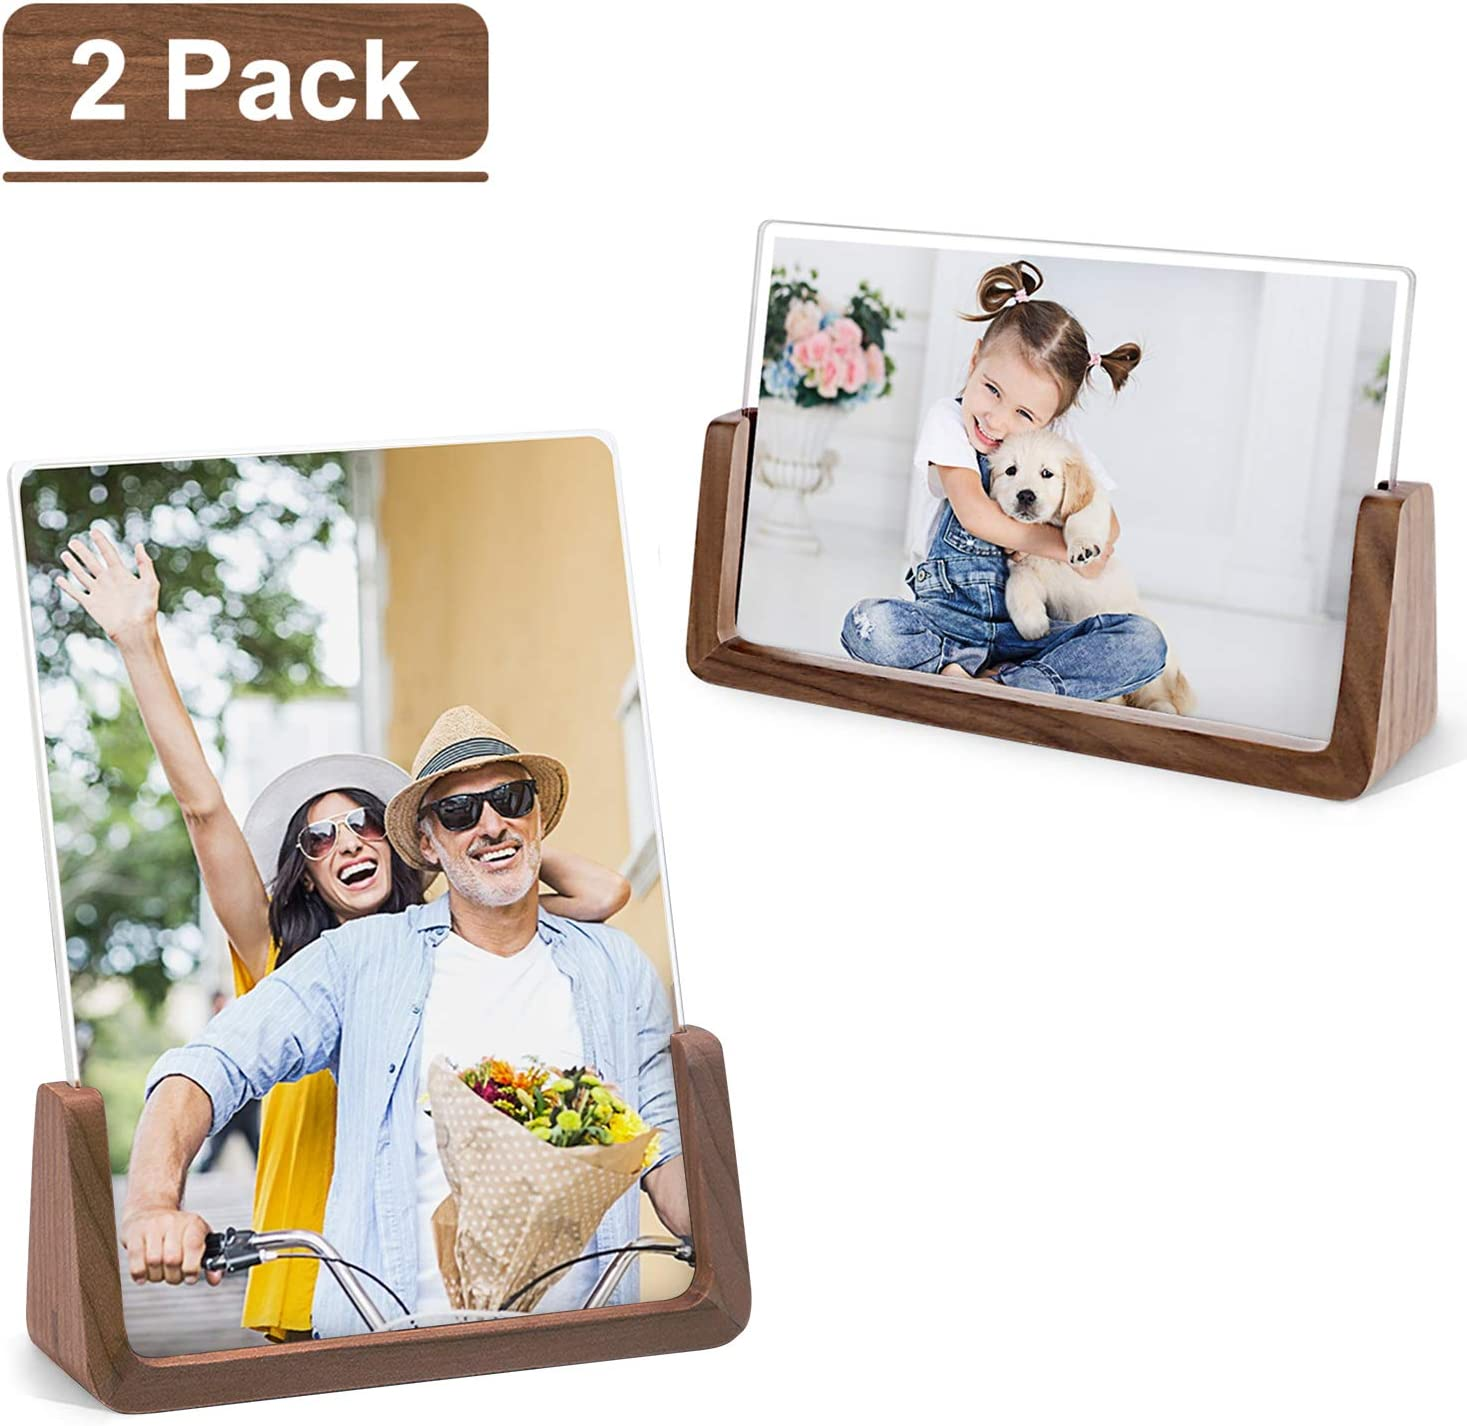 MEKO Picture Frame 5x7 Inch Wood Rustic Photo Frame Made of Walnut Wood Base and High Definition Break Free Acrylic Covers for Tabletop or Desktop Display - 2 Pack (Horizontal + Vertical)